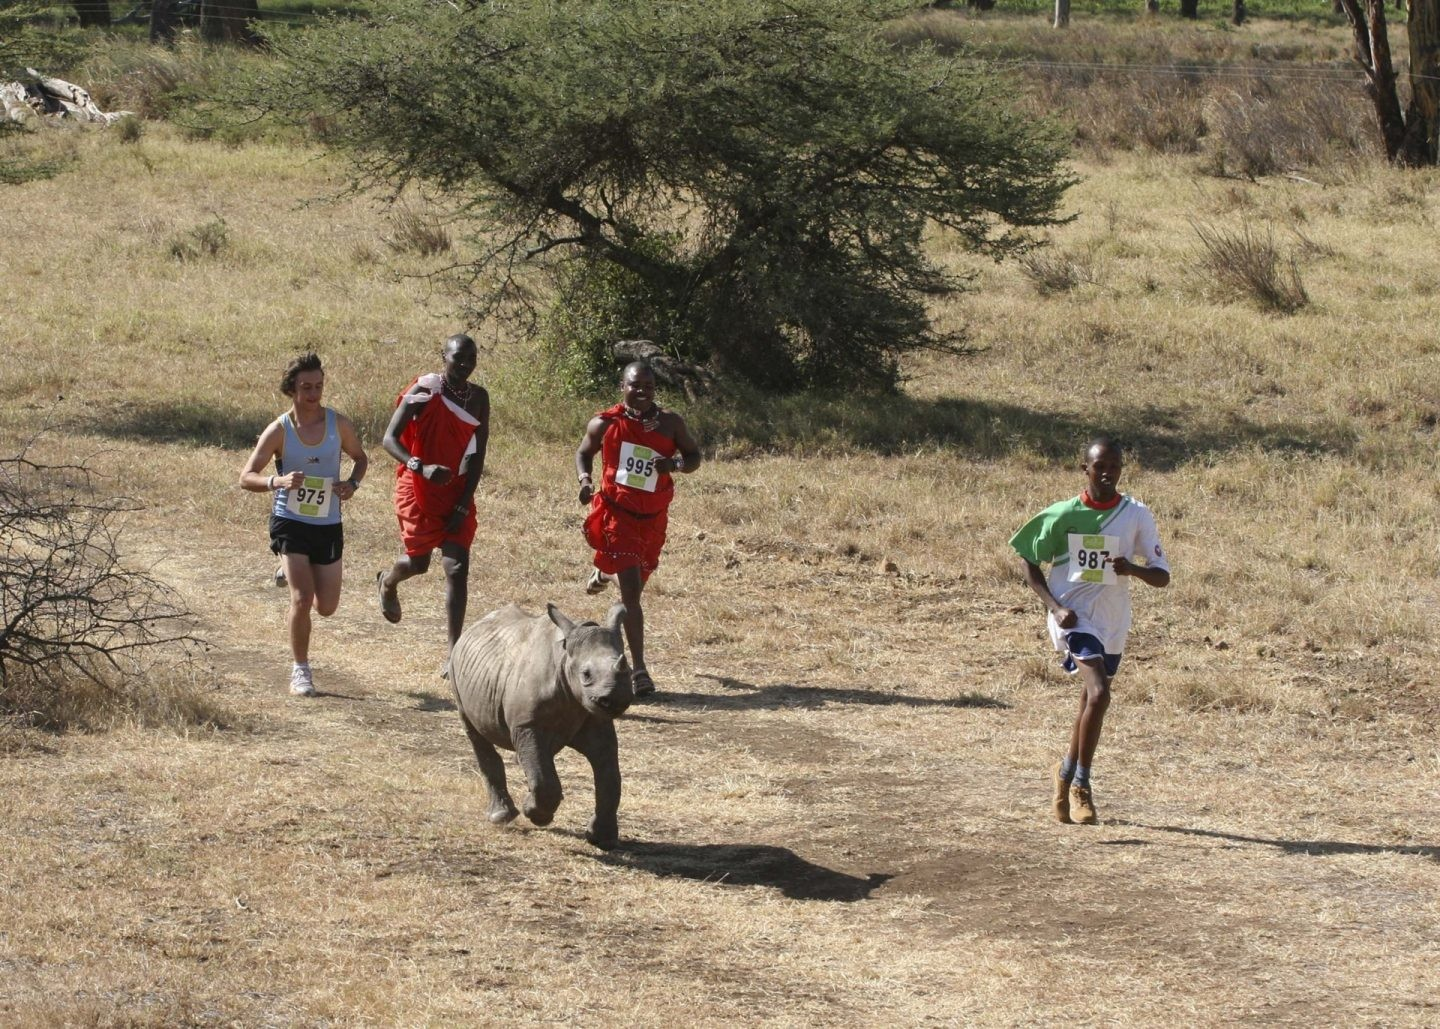 Huawei Kenya and Safaricom pump millions into Lewa Safari Marathon